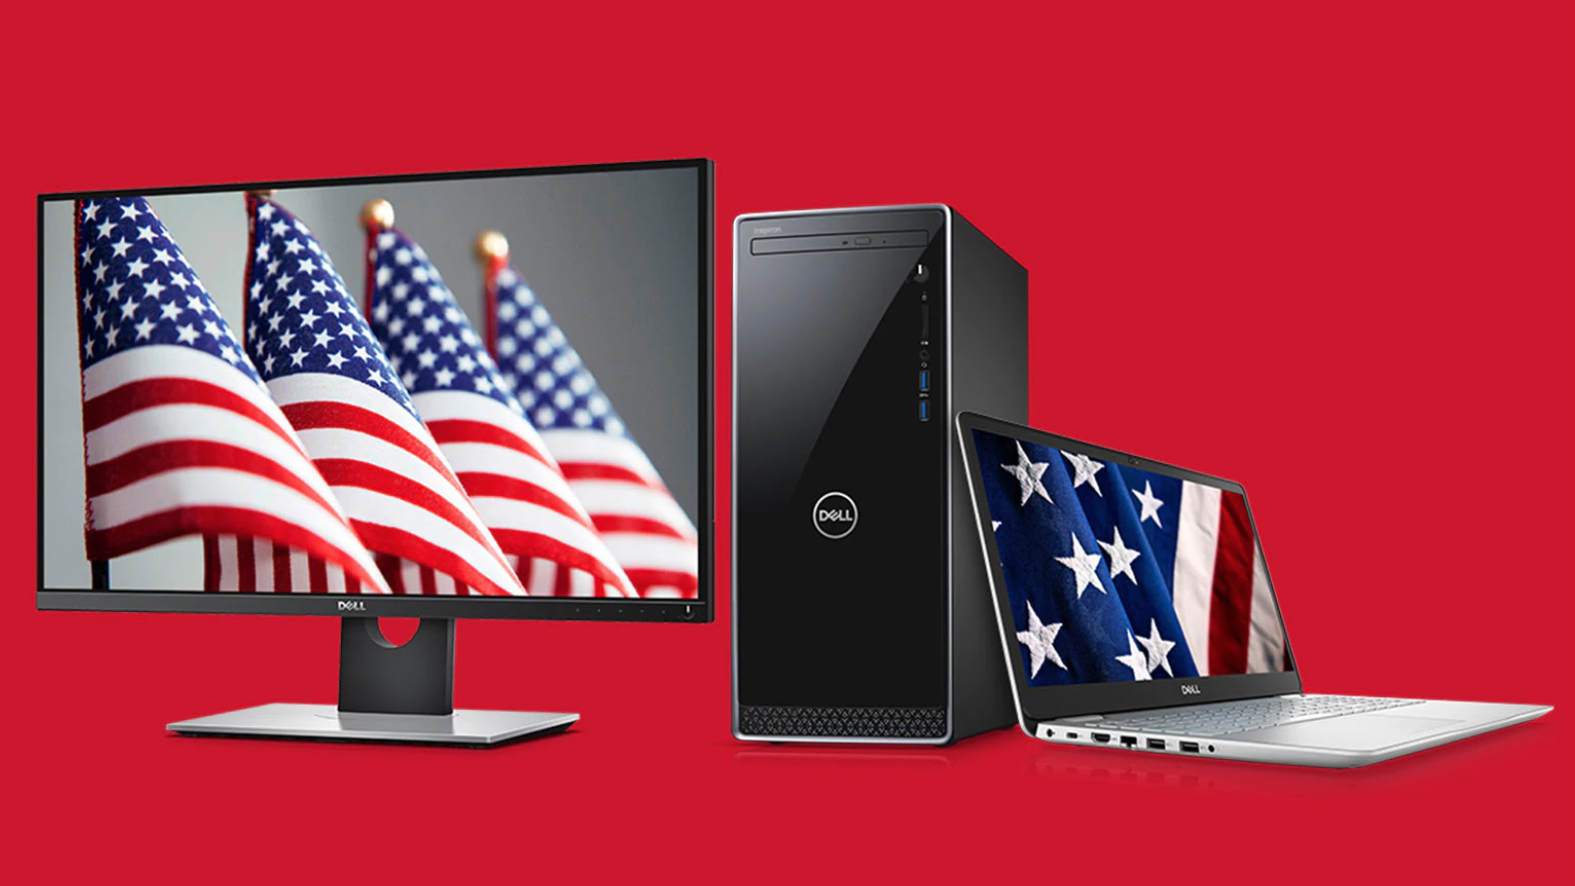 Dell Memorial Day sale: save up to 50% on TVs, laptops, monitors, and more.